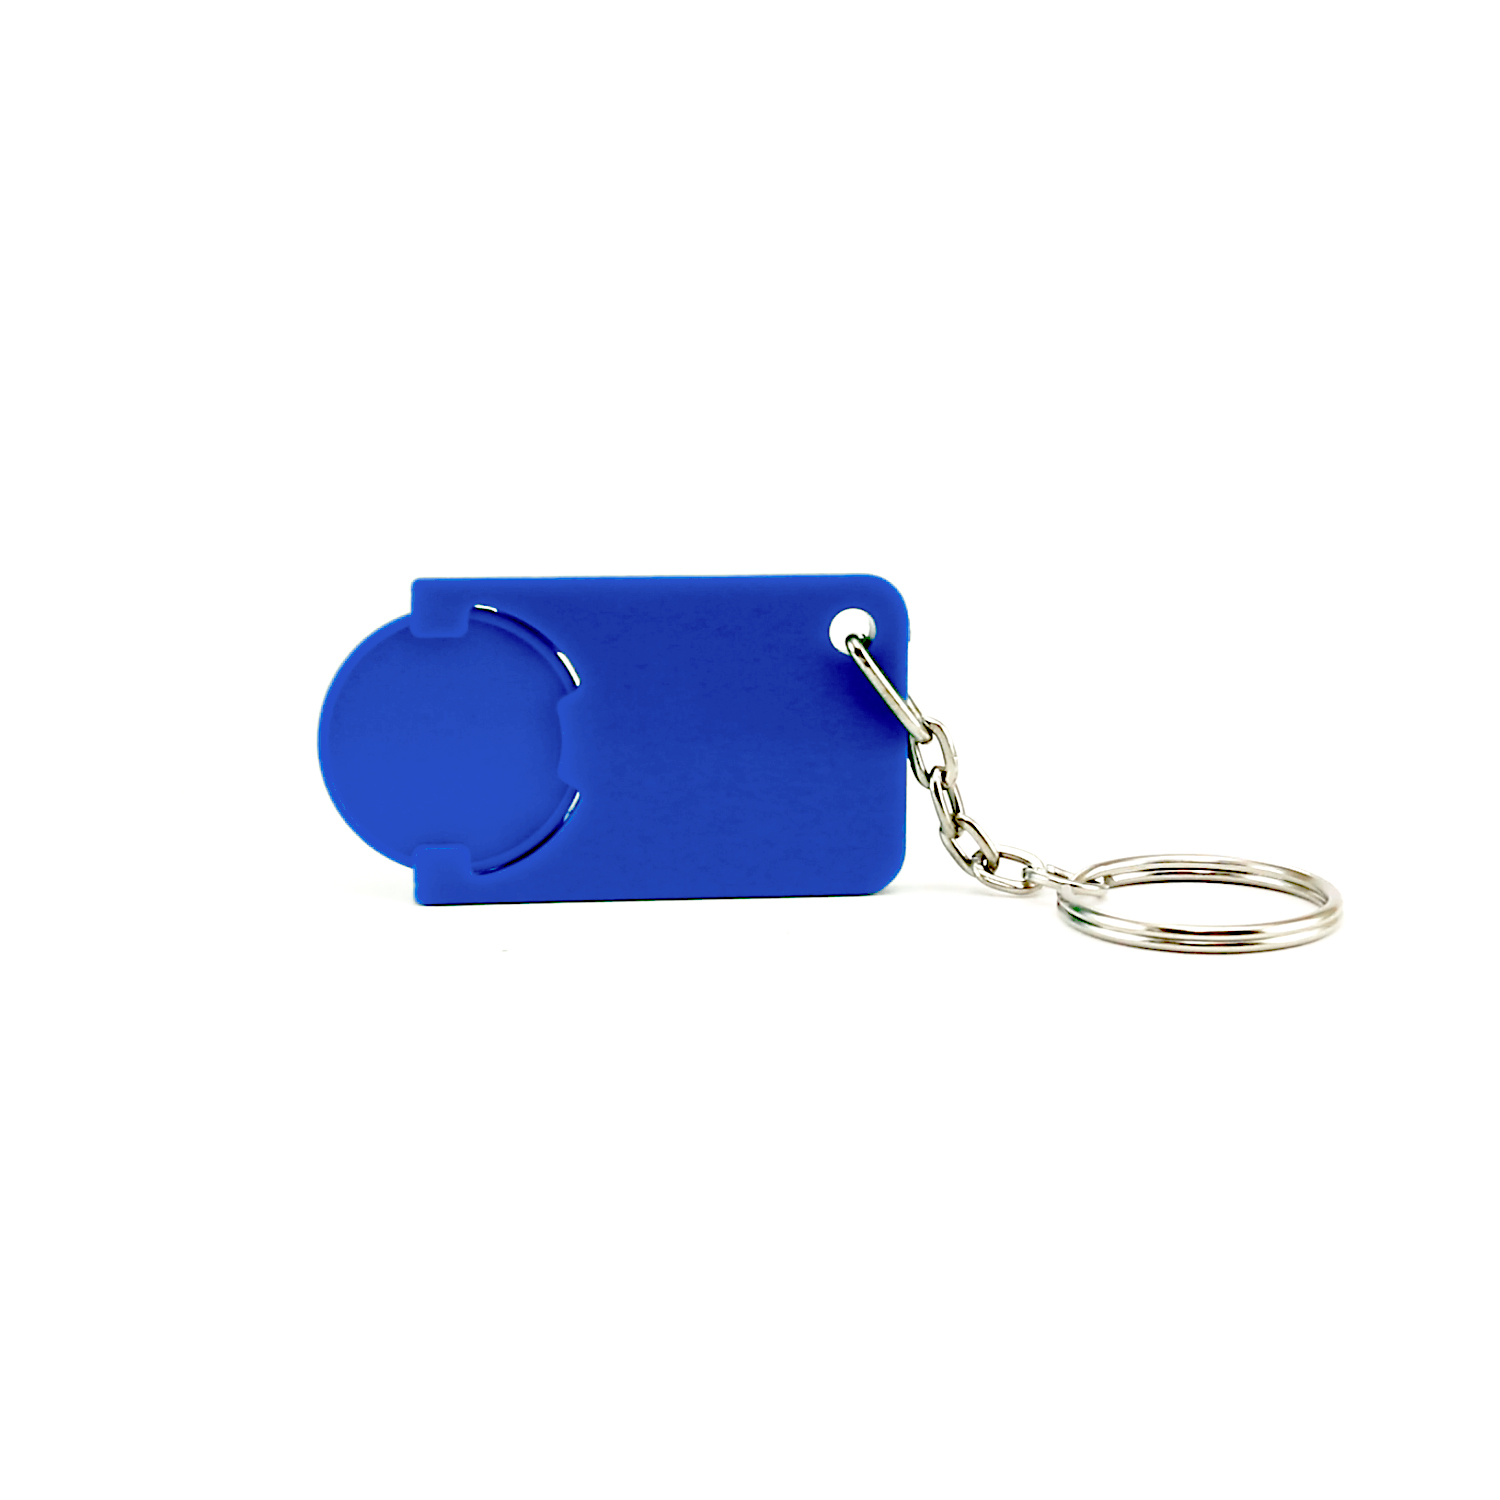 Keychain 039 (Shopping Trolley coin keychain) - hmi47039-07 (Blue